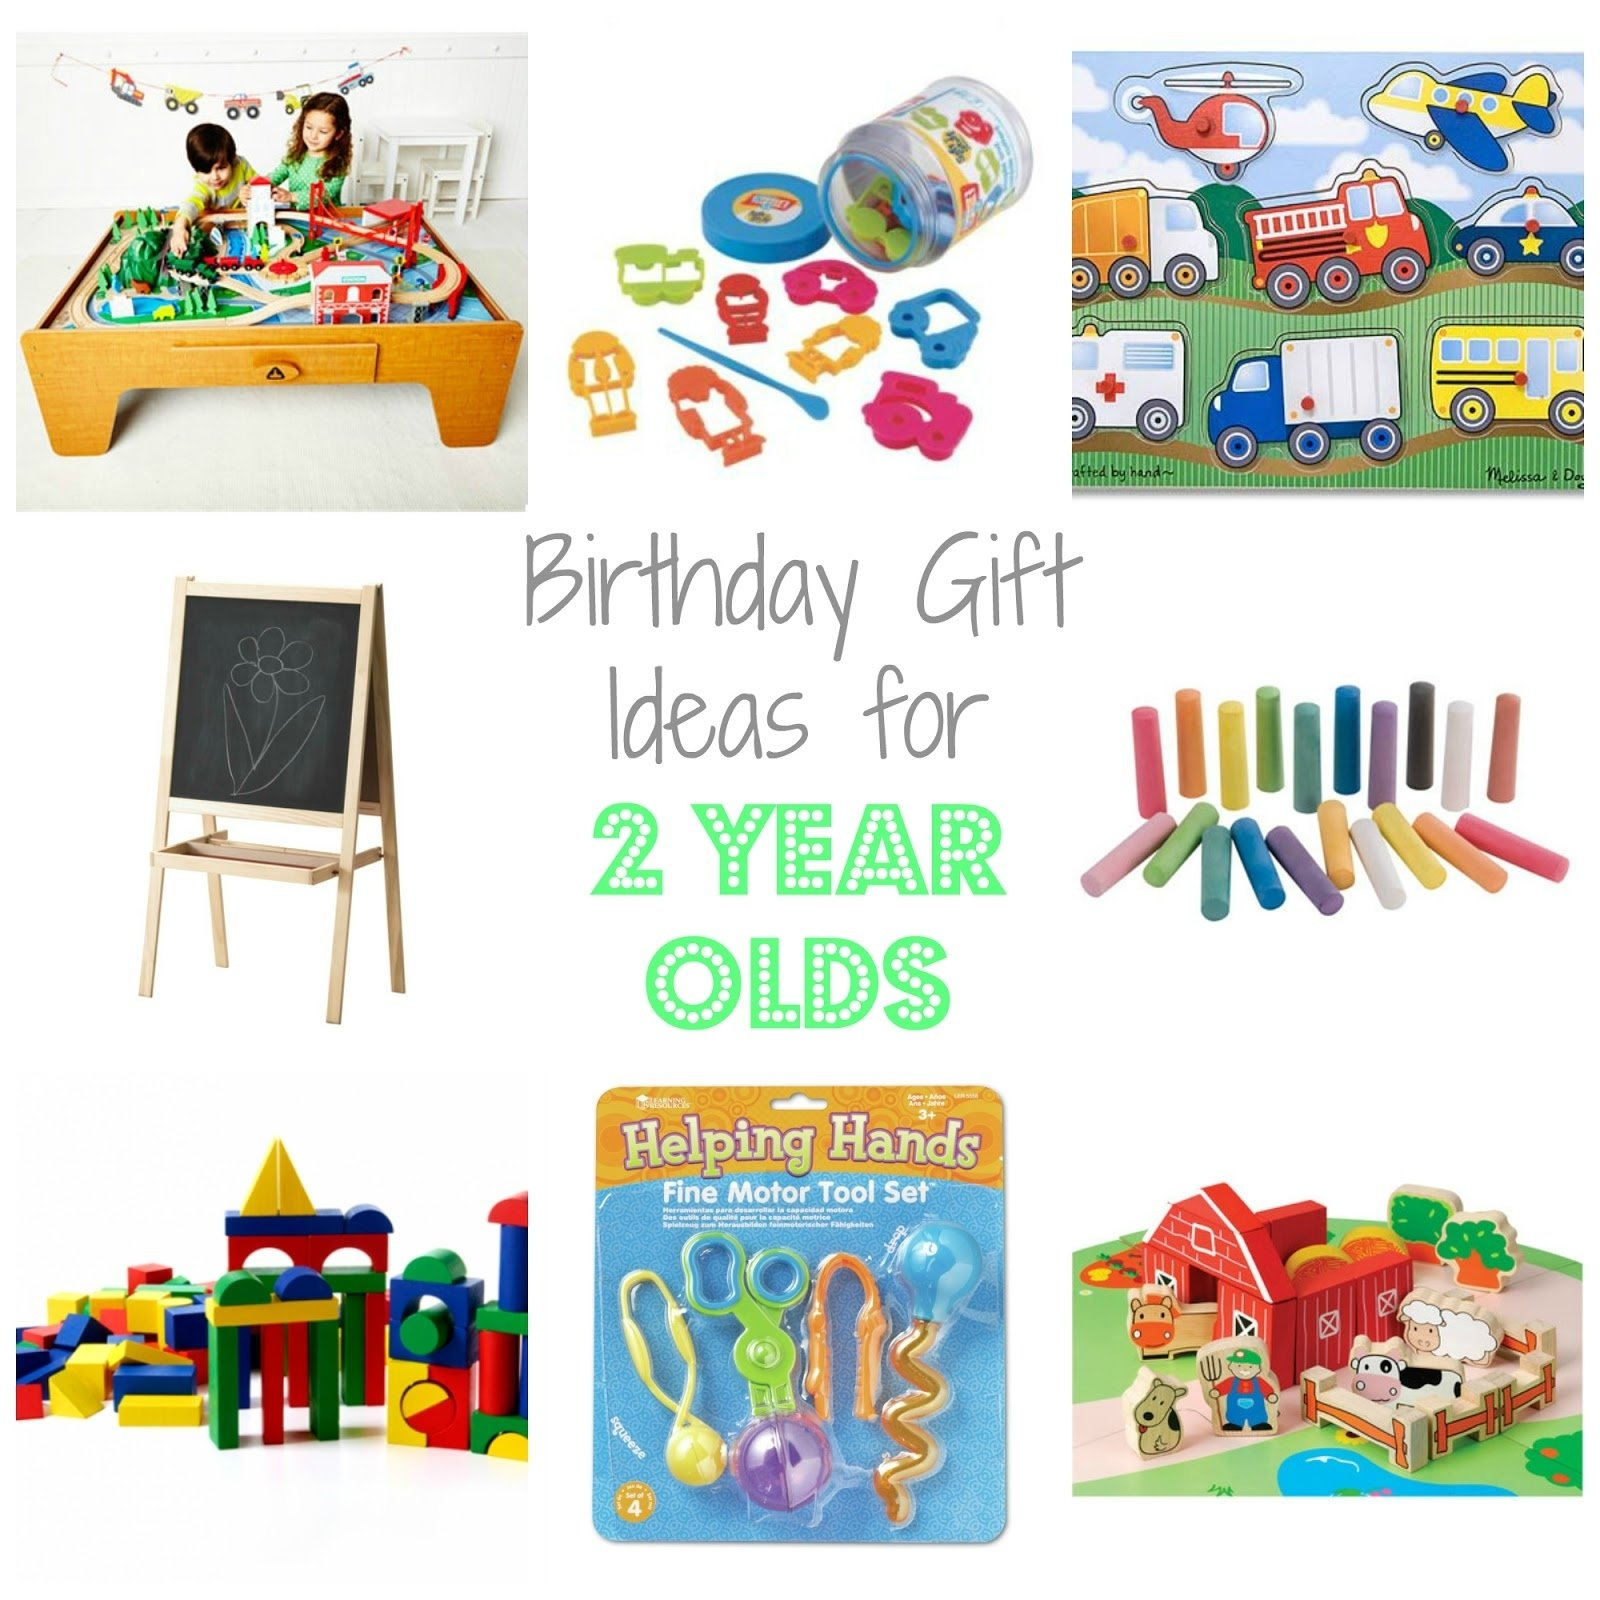 10 Nice Gift Ideas For 2 Year Olds birthday gift ideas for two year olds oh little one sweet 6